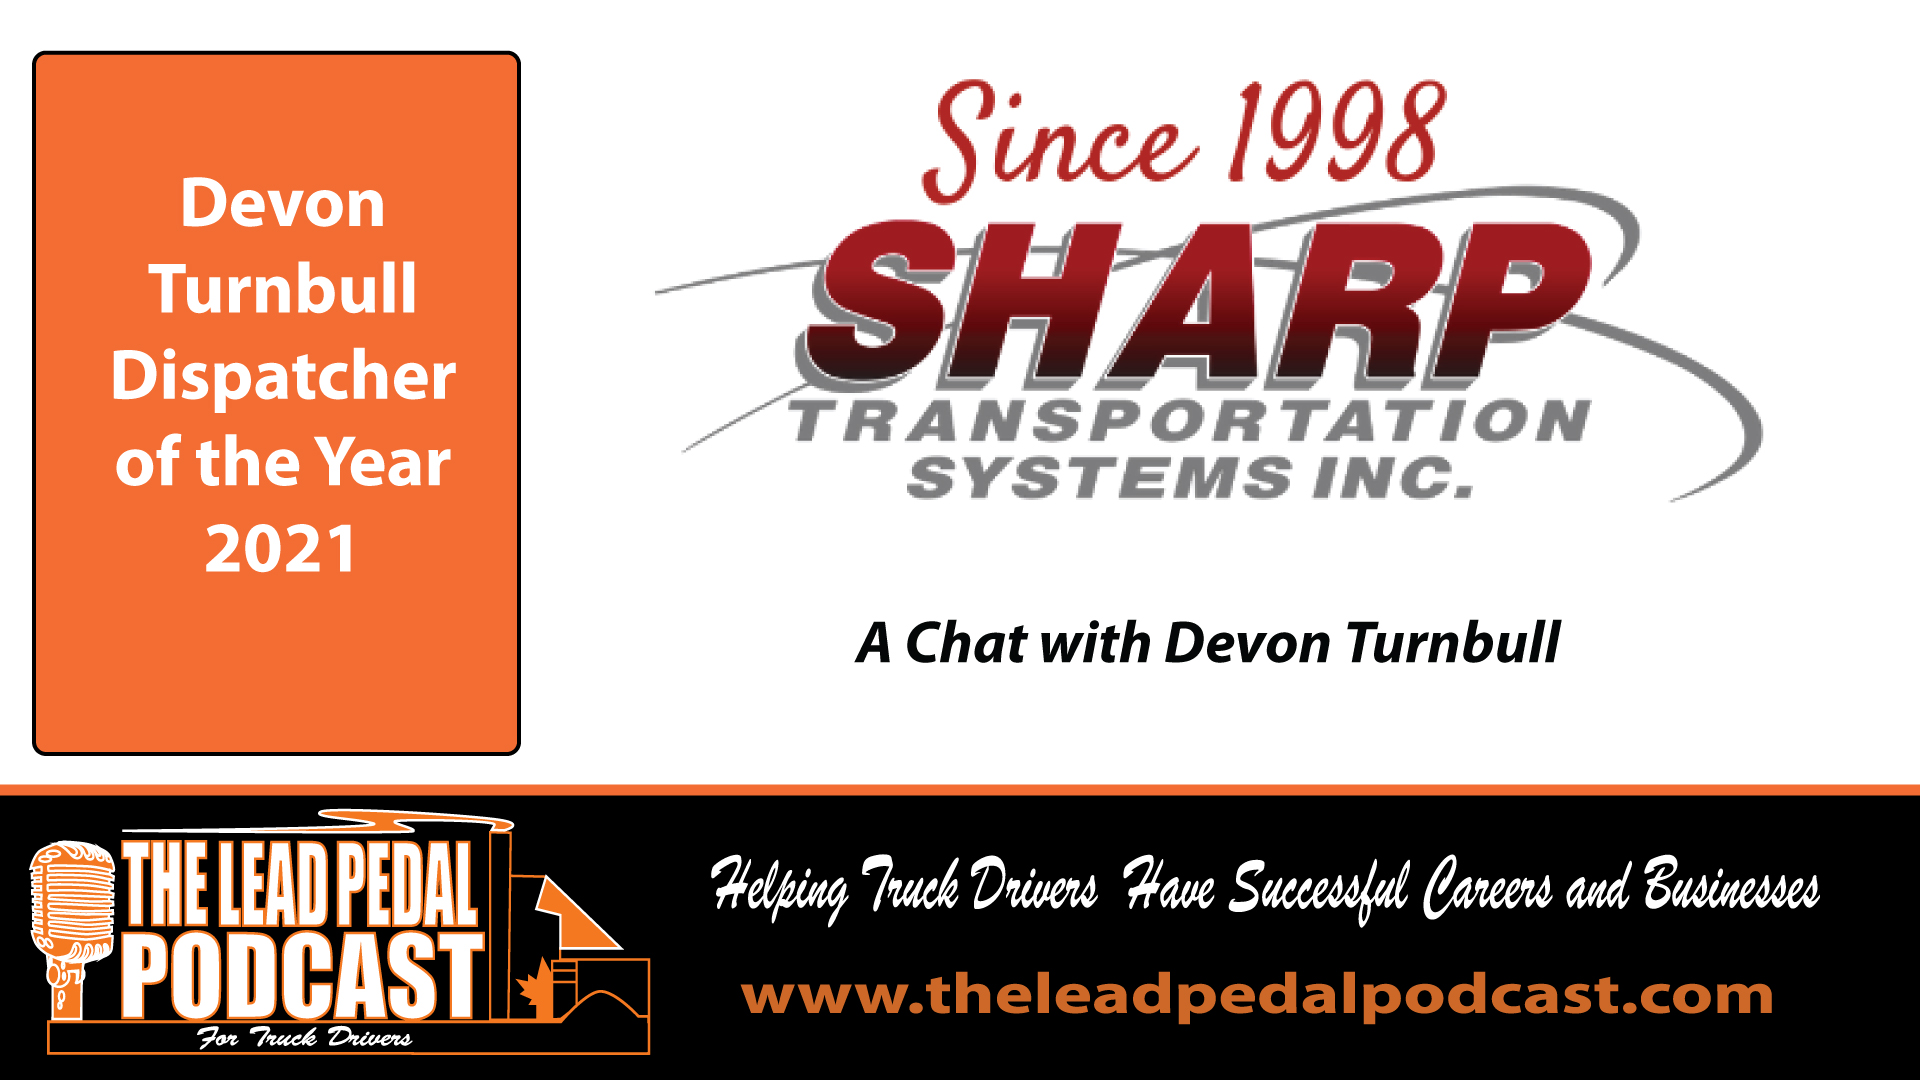 LP702 A Chat With Dispatcher of the Year 2021 - Devon Turnbull